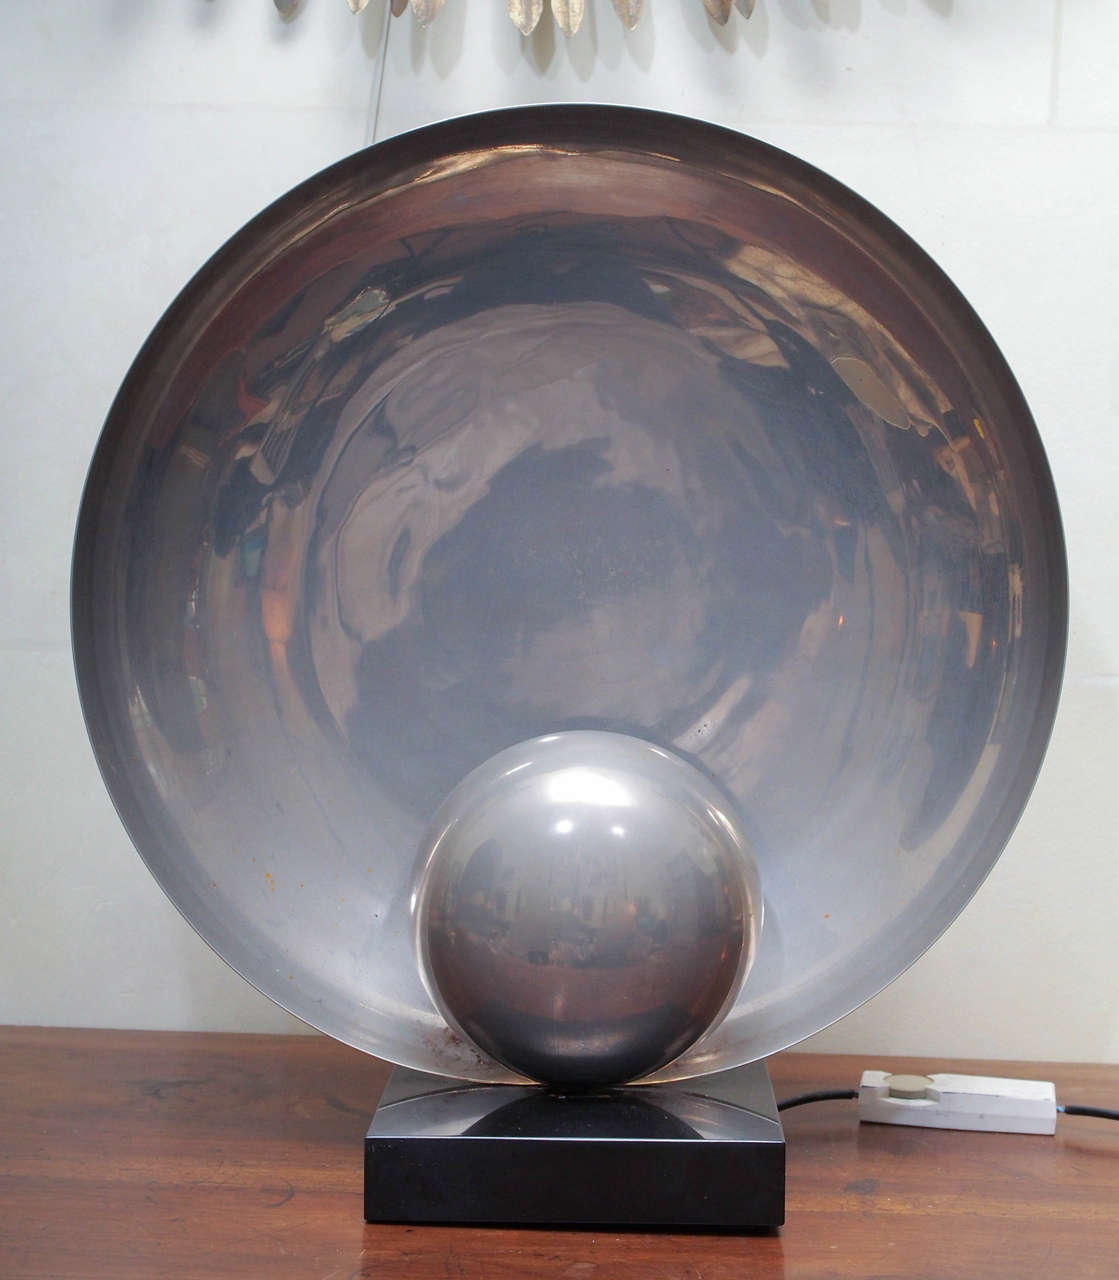 A rare and unusual French Art Deco silver metal moon lamp. The bulb is hidden behind a small silver disc, casting a glowing light on the larger silver disc mounted behind.